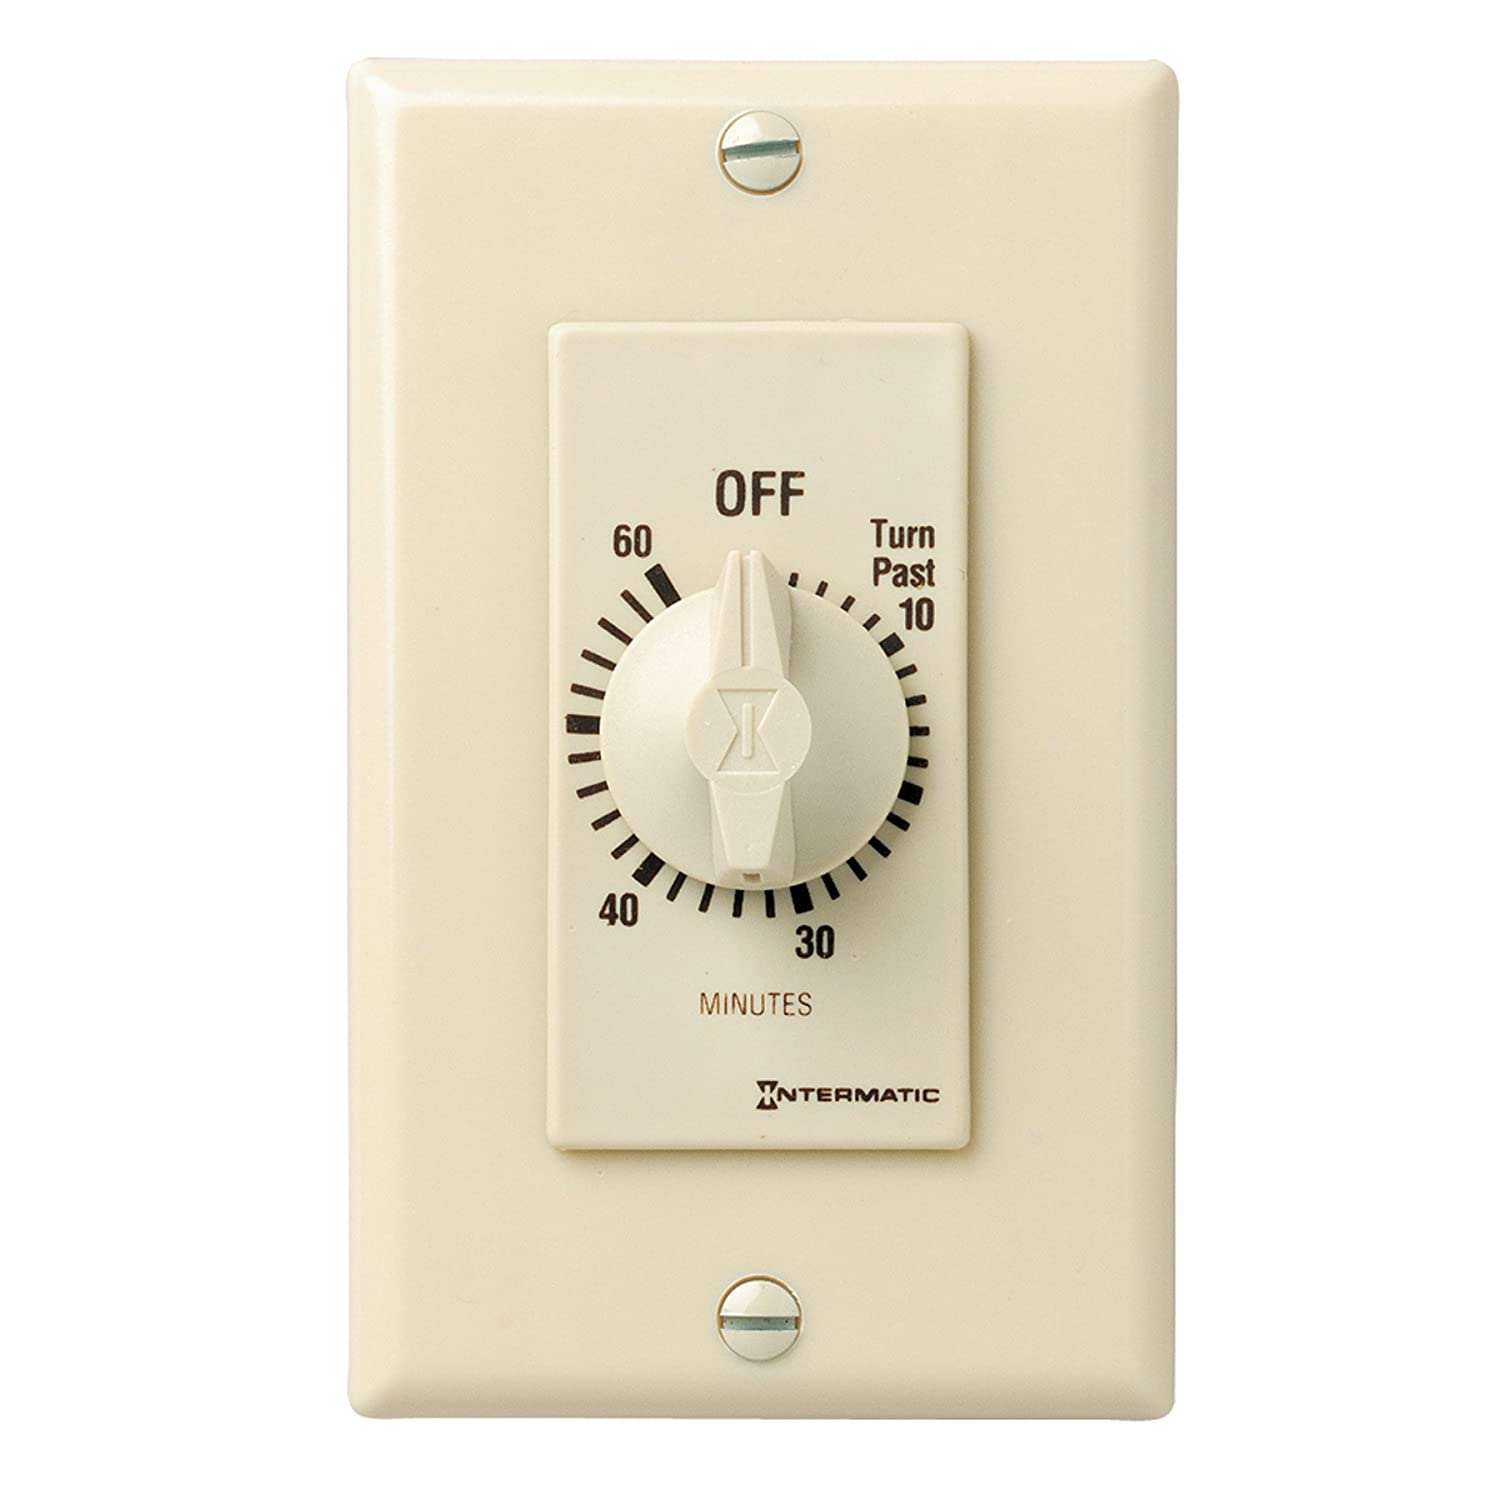 Ivory Intermatic FD460M 60-Minute Spring-Loaded Wall Timer for ...